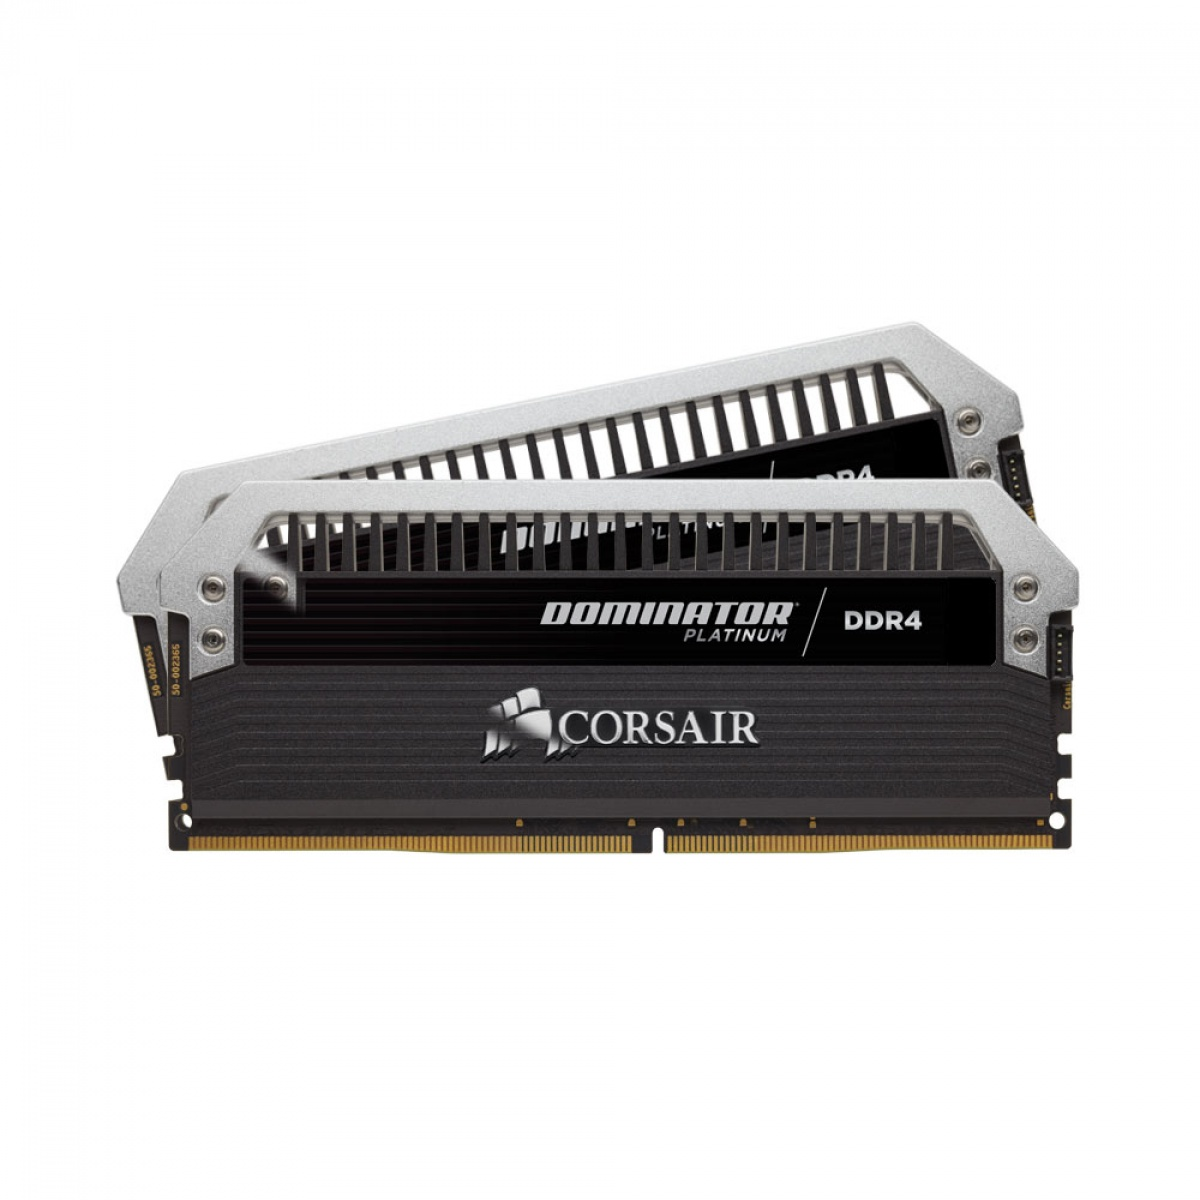 Memorie Dominator Platinum , DDR4, 2 x 4 GB, 3600 MHz, CL18, kit